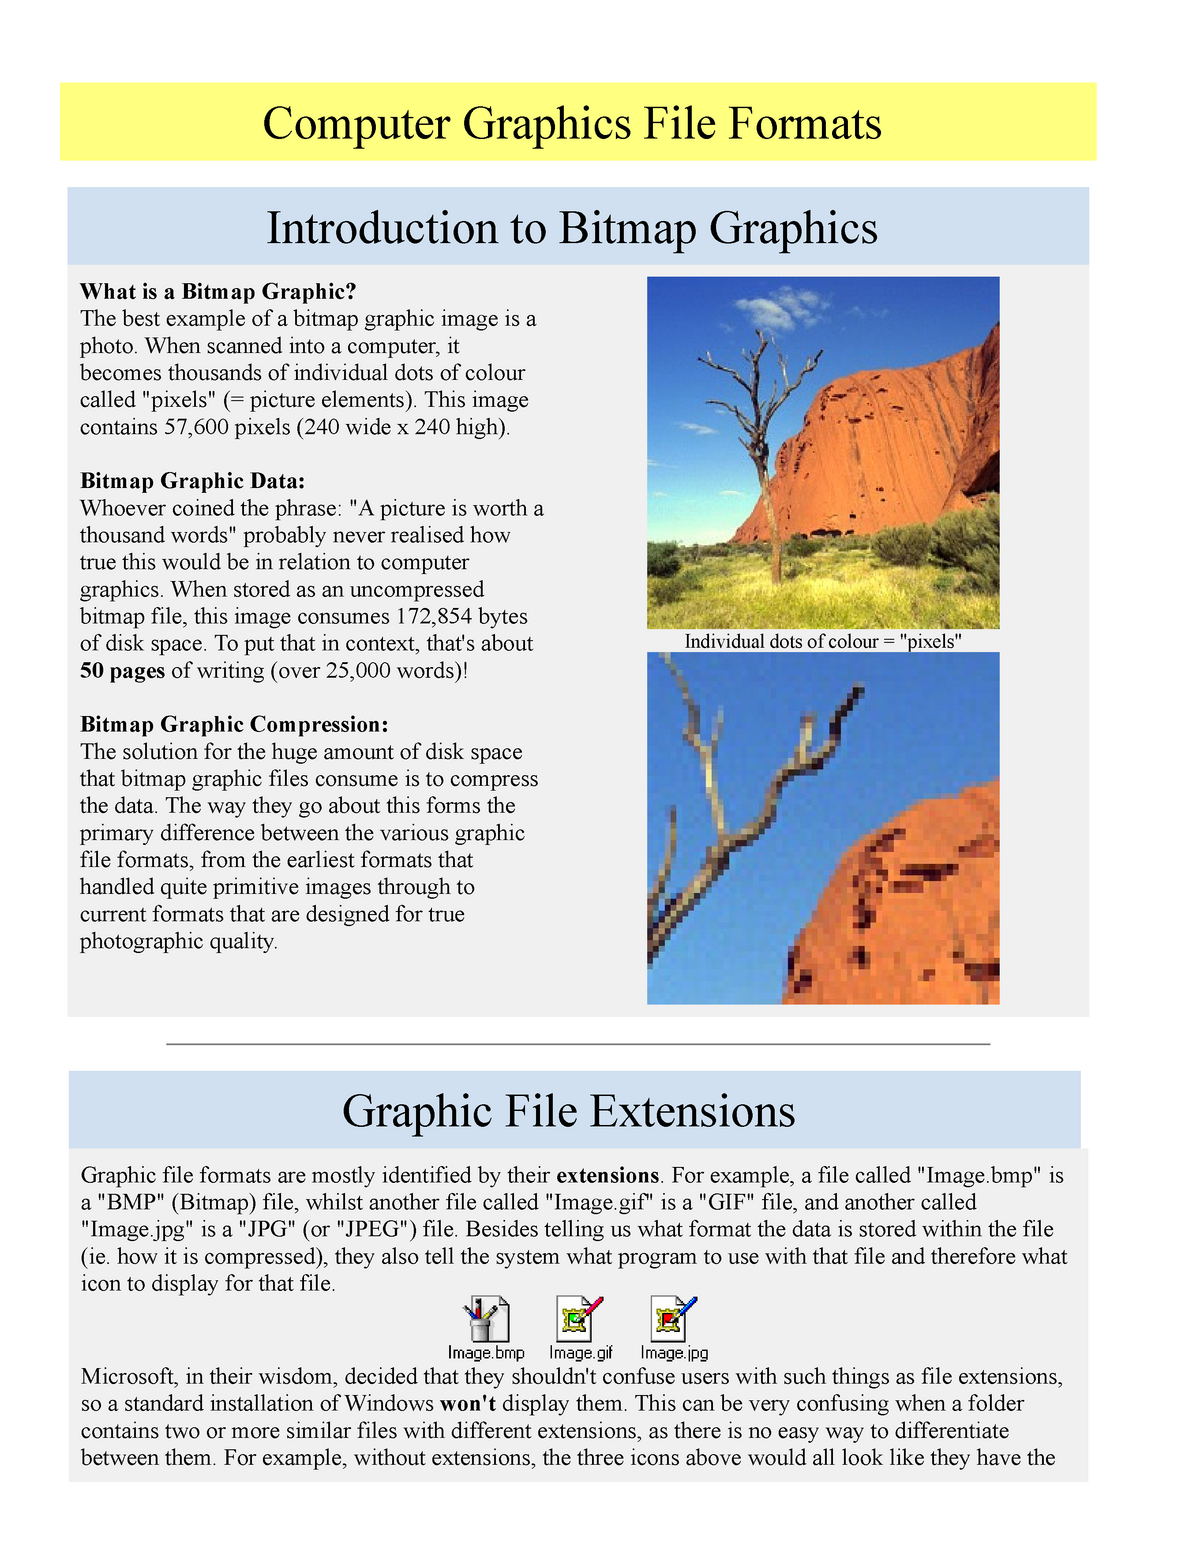 Computer Graphics File Formats - 031284 : Web Services